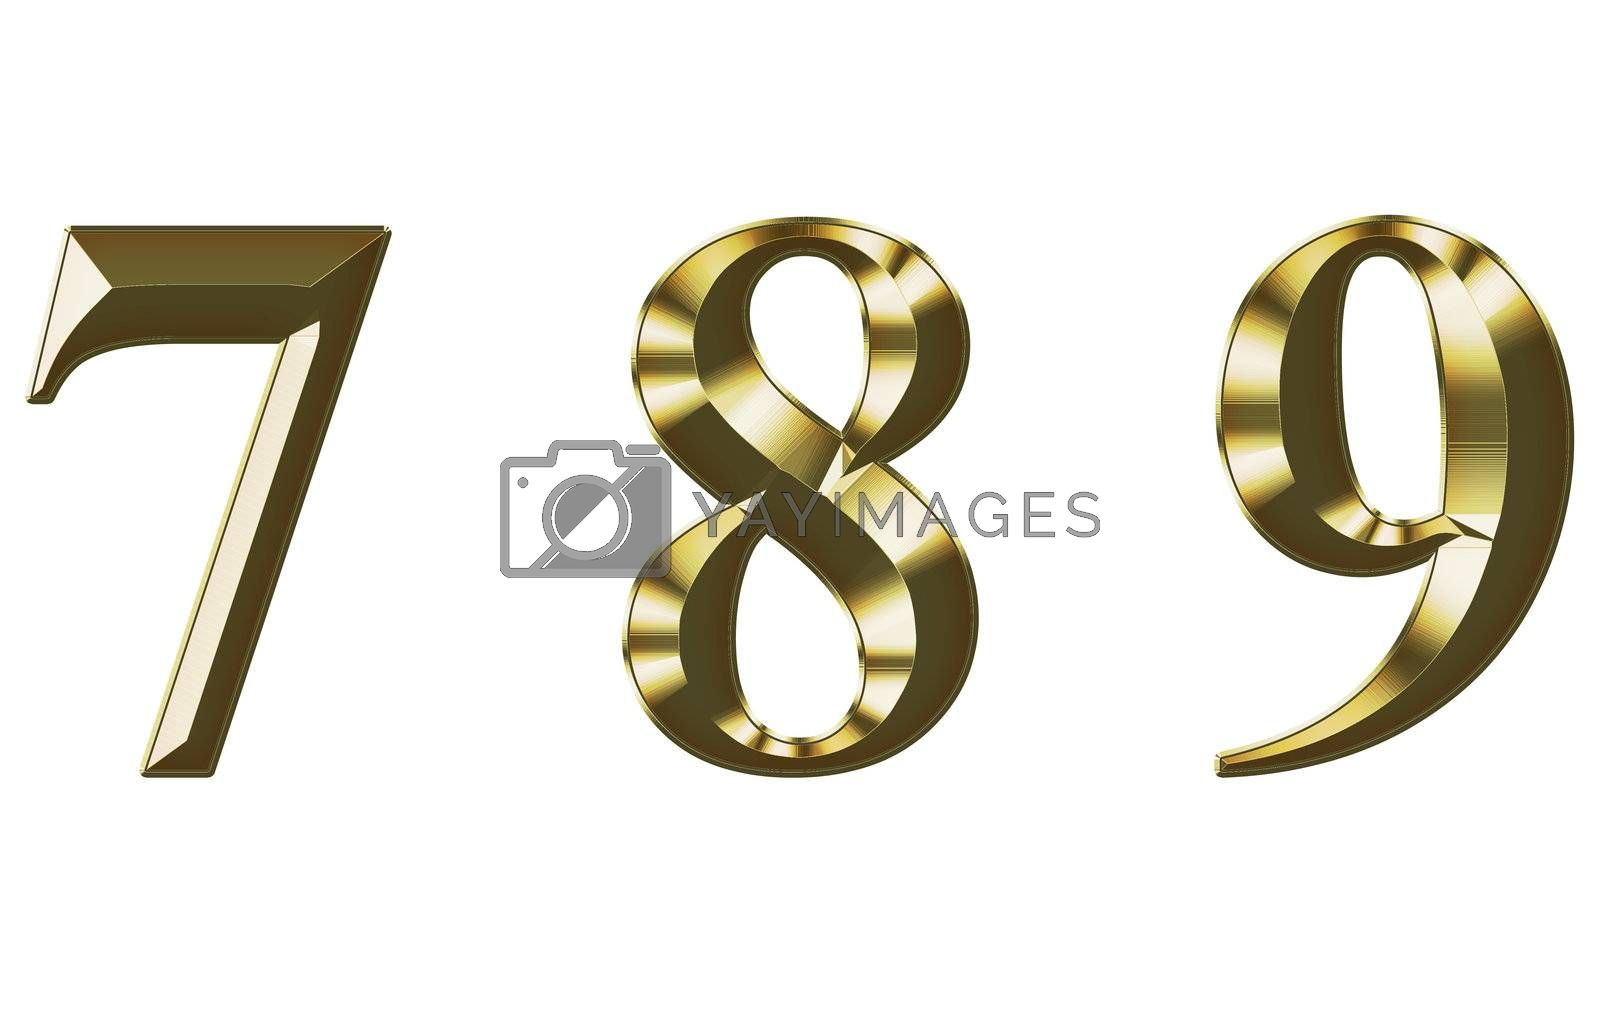 Exclusive collection font from brushed gold on white background